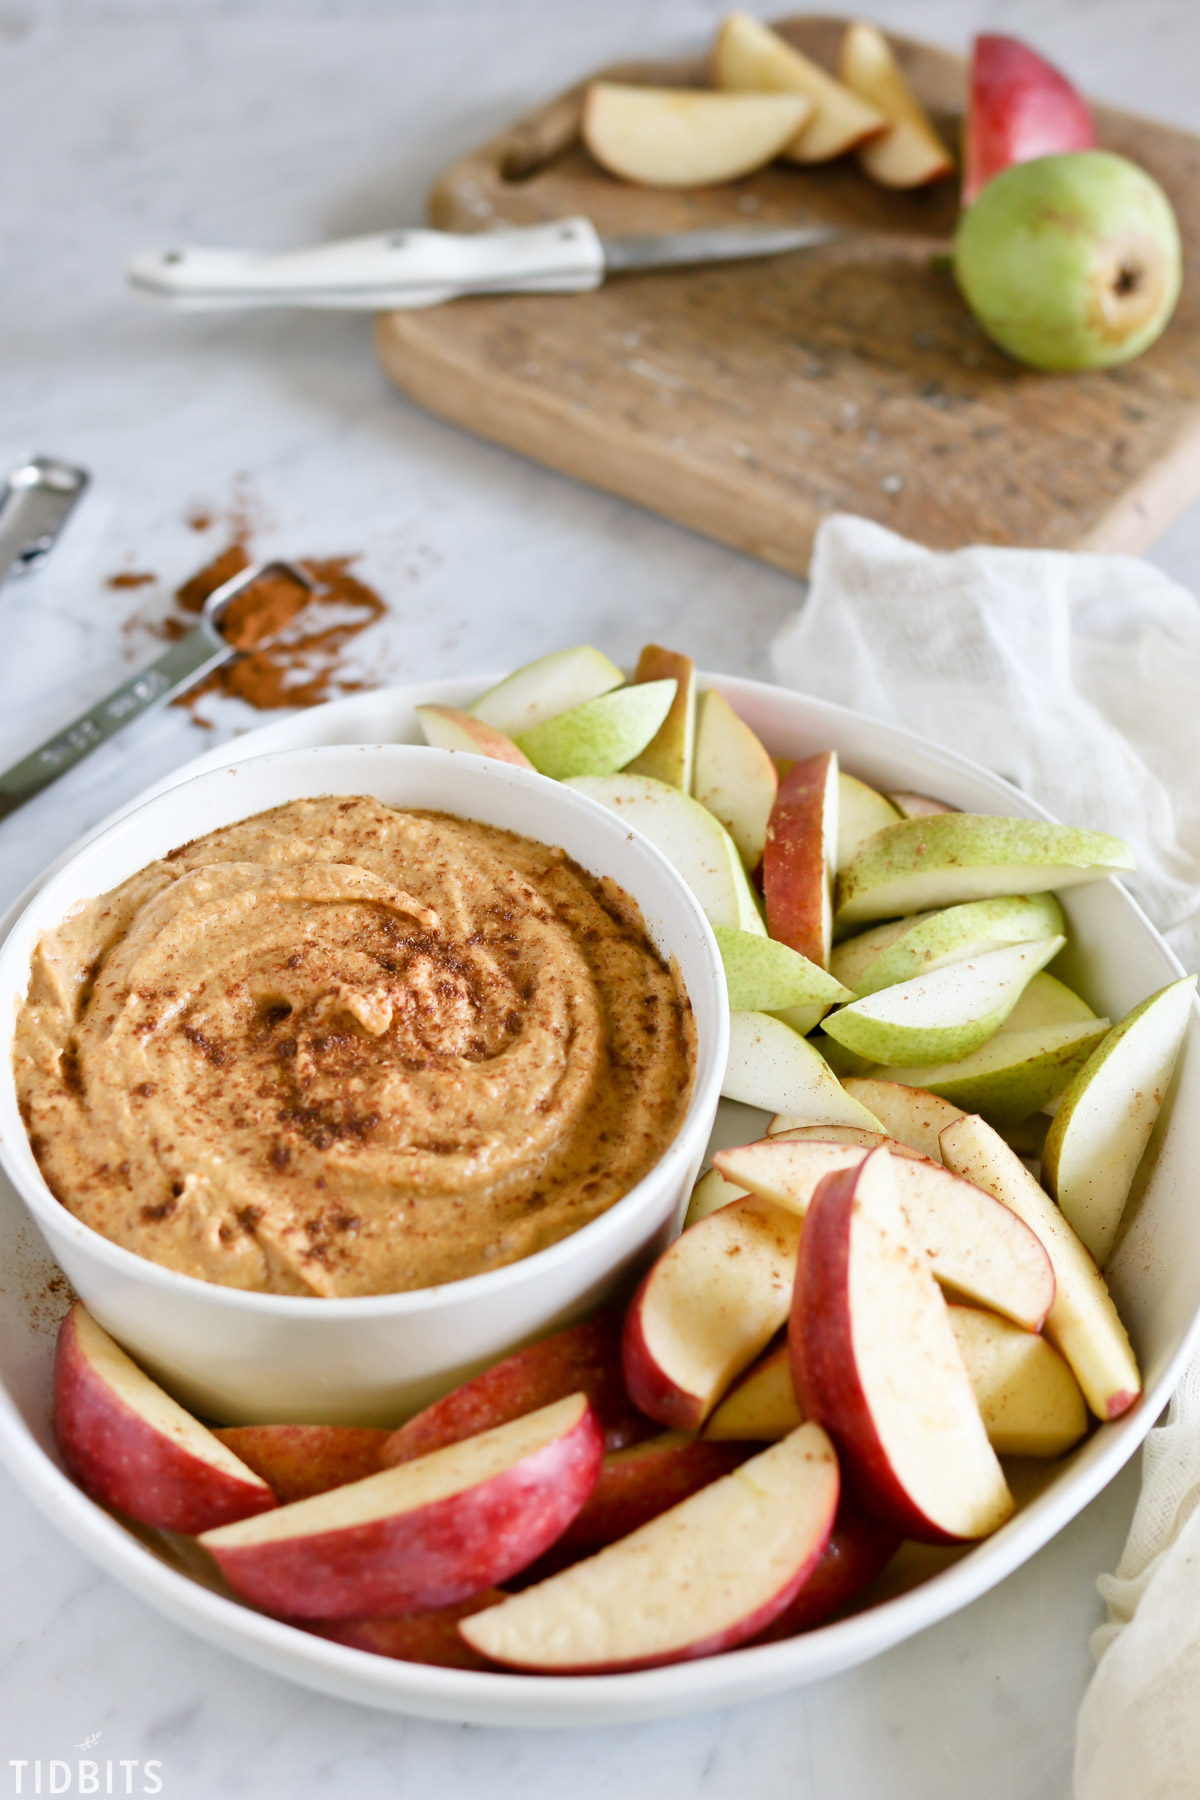 Healthy pumpkin dip with apples for dipping.